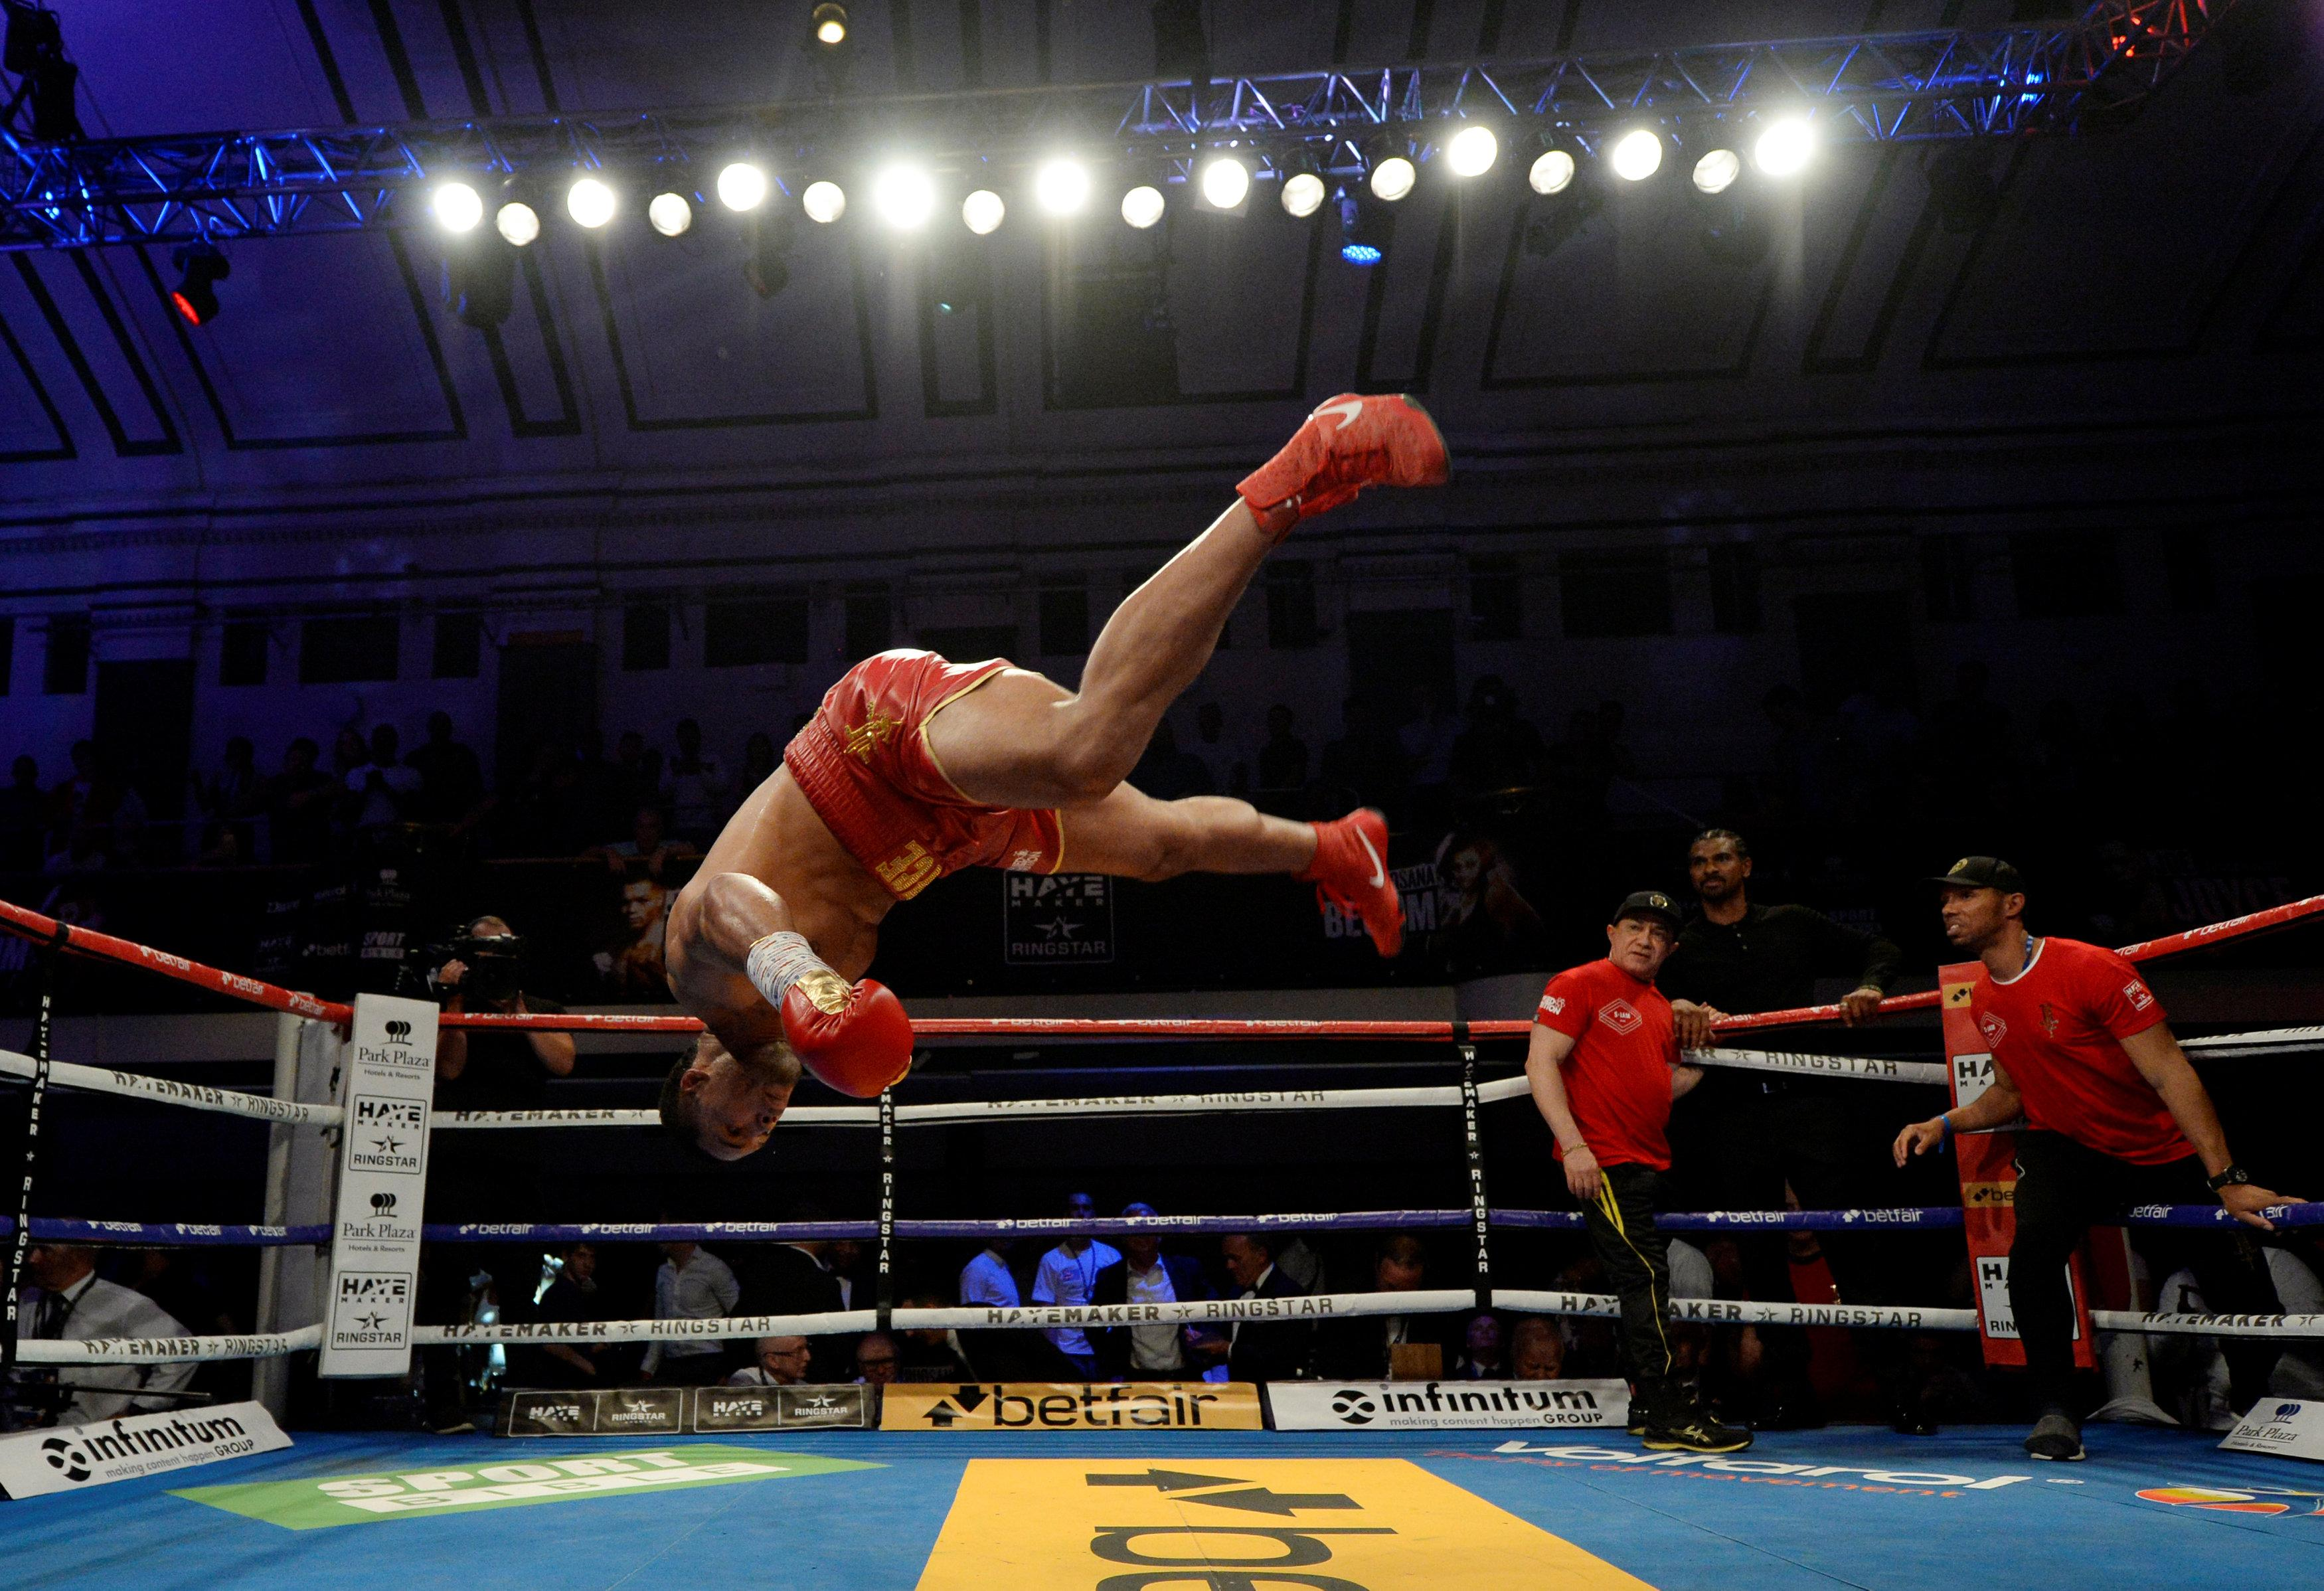 Commonwealth champion Joyce has great moves for a big man